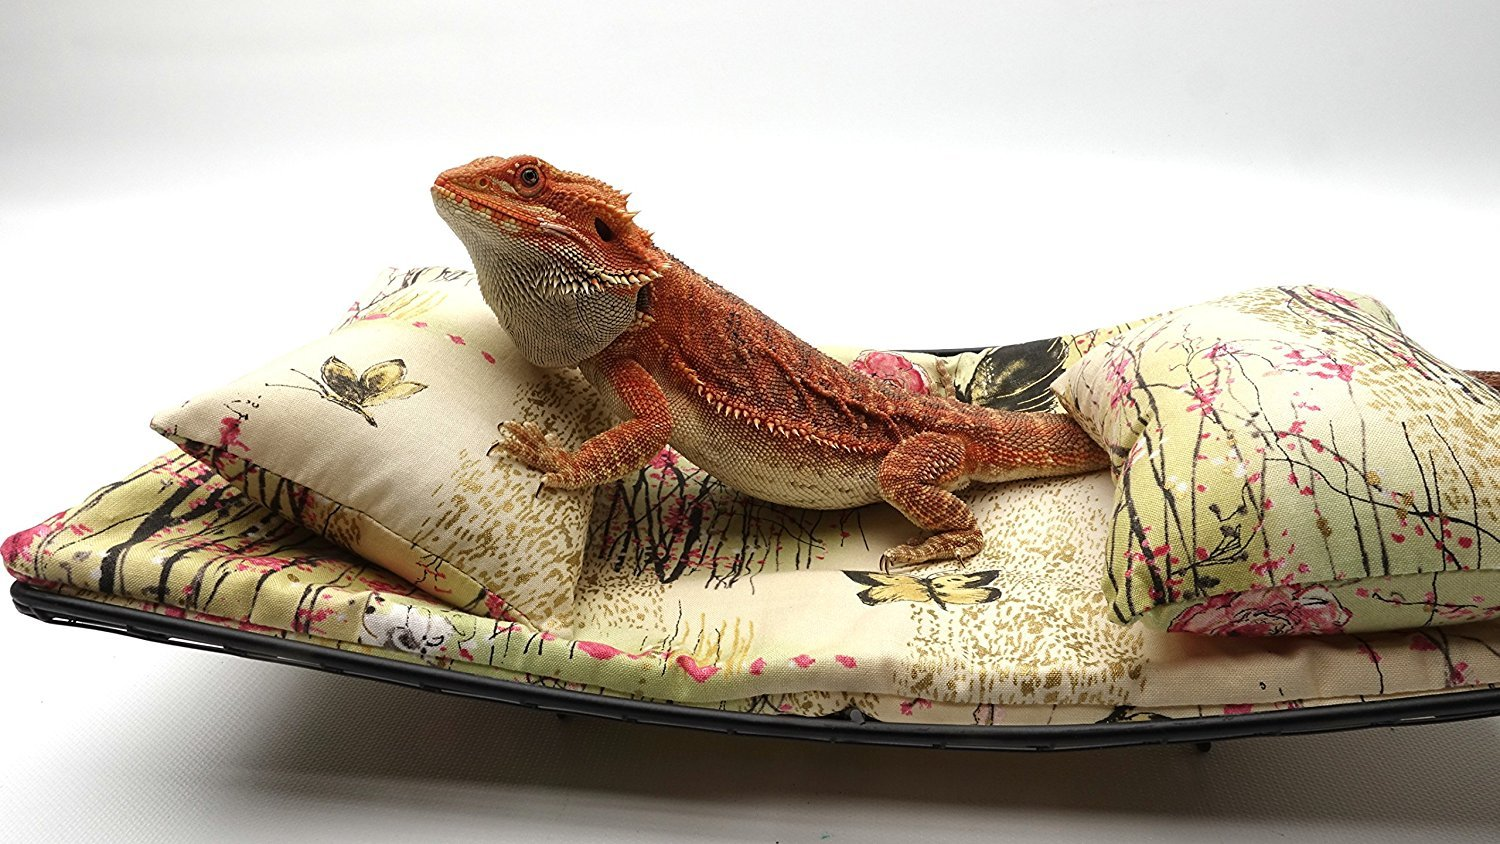 Chaise Lounge for Bearded Dragons, Asian Little Pink Flowers and Butterflies fabric Carolina Custom Cages